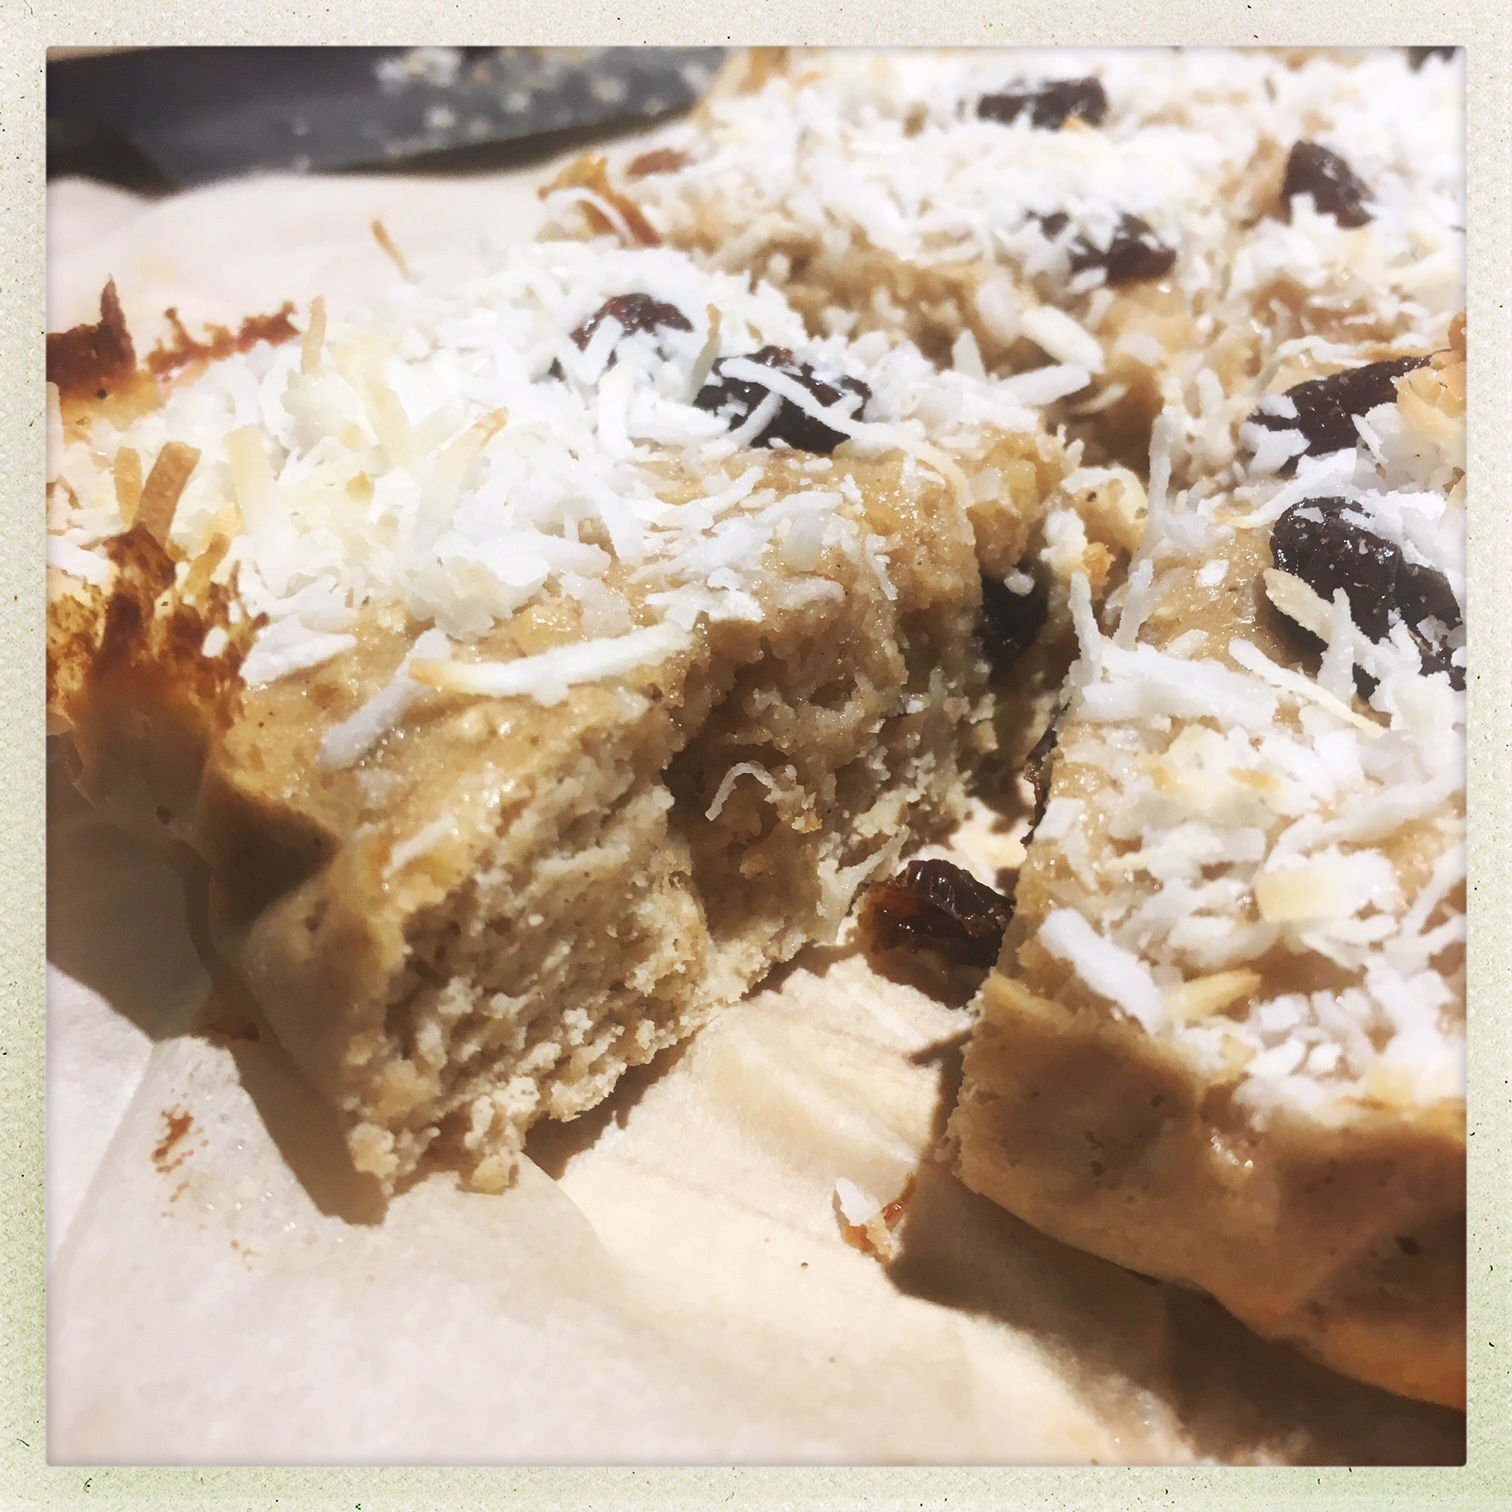 oatmeal raisin coconut bars 6.jpg